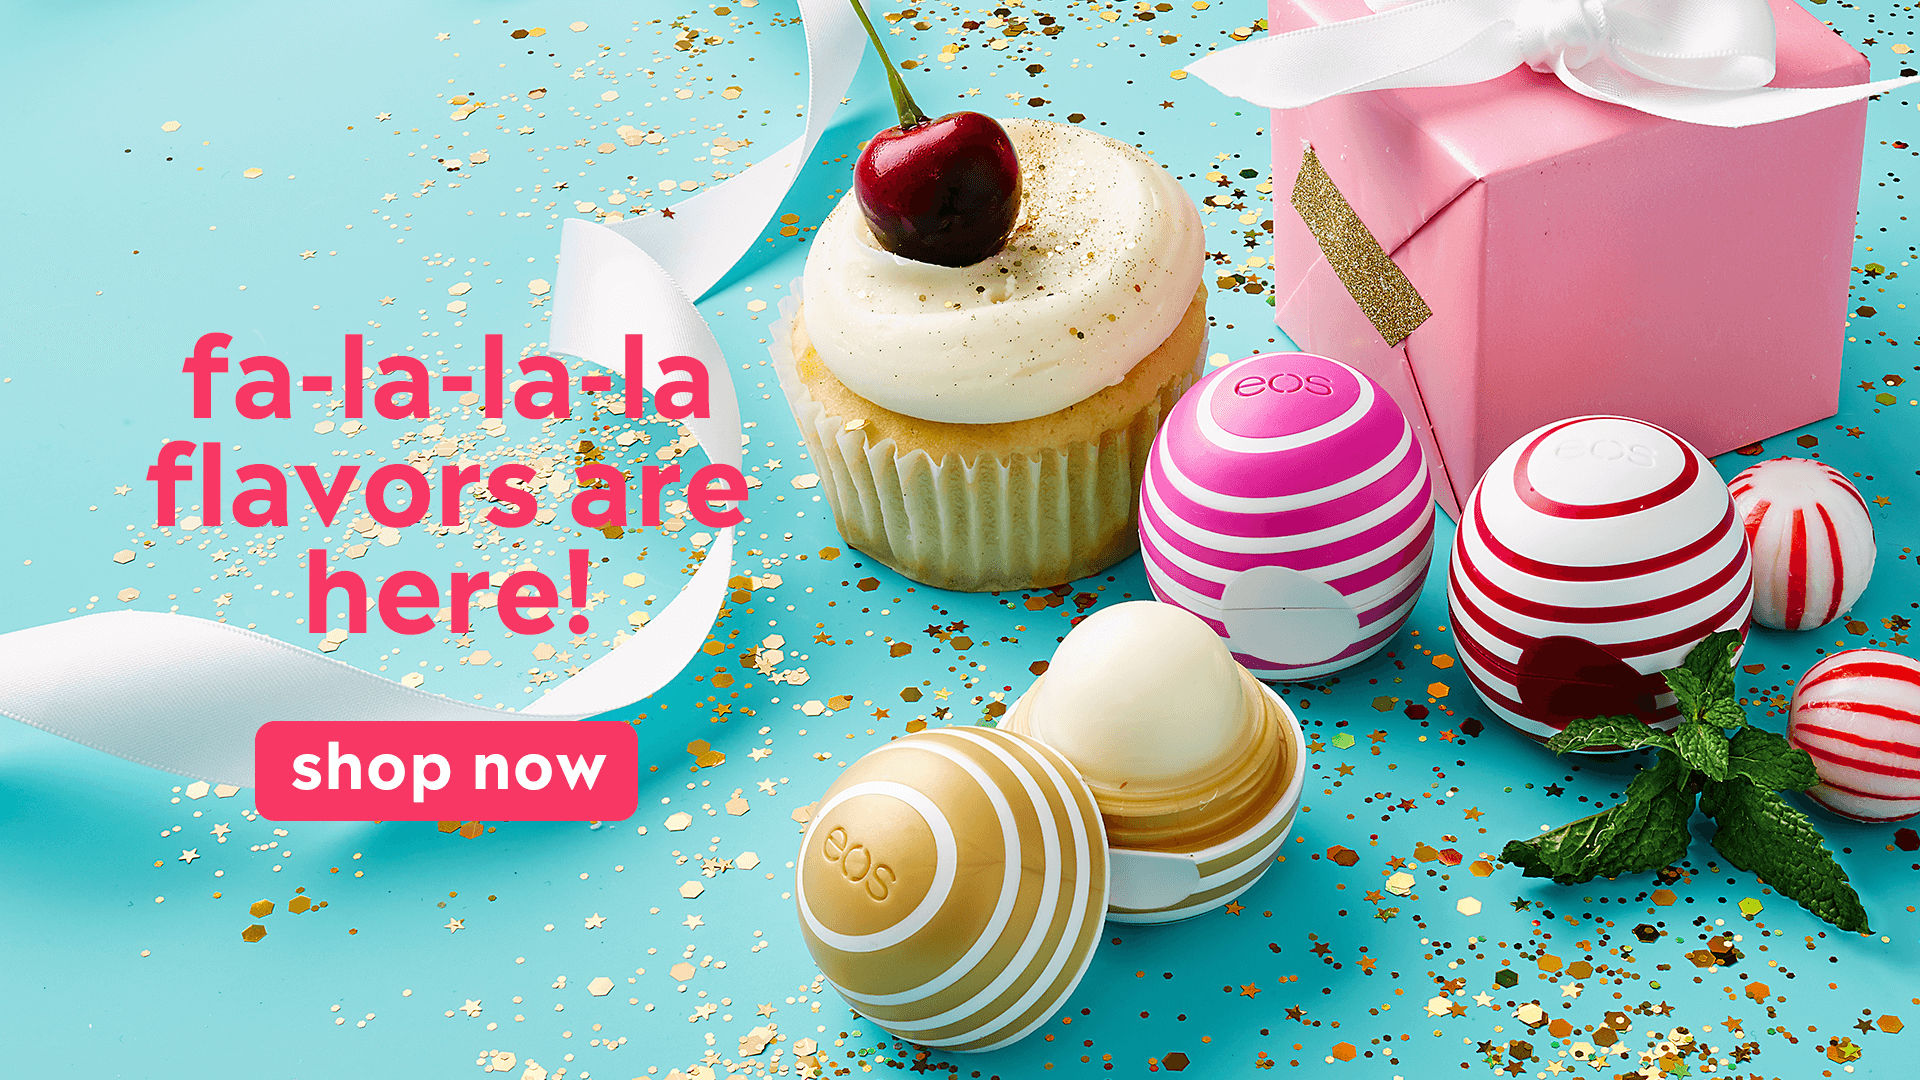 fa -la-la-la flavors are here!